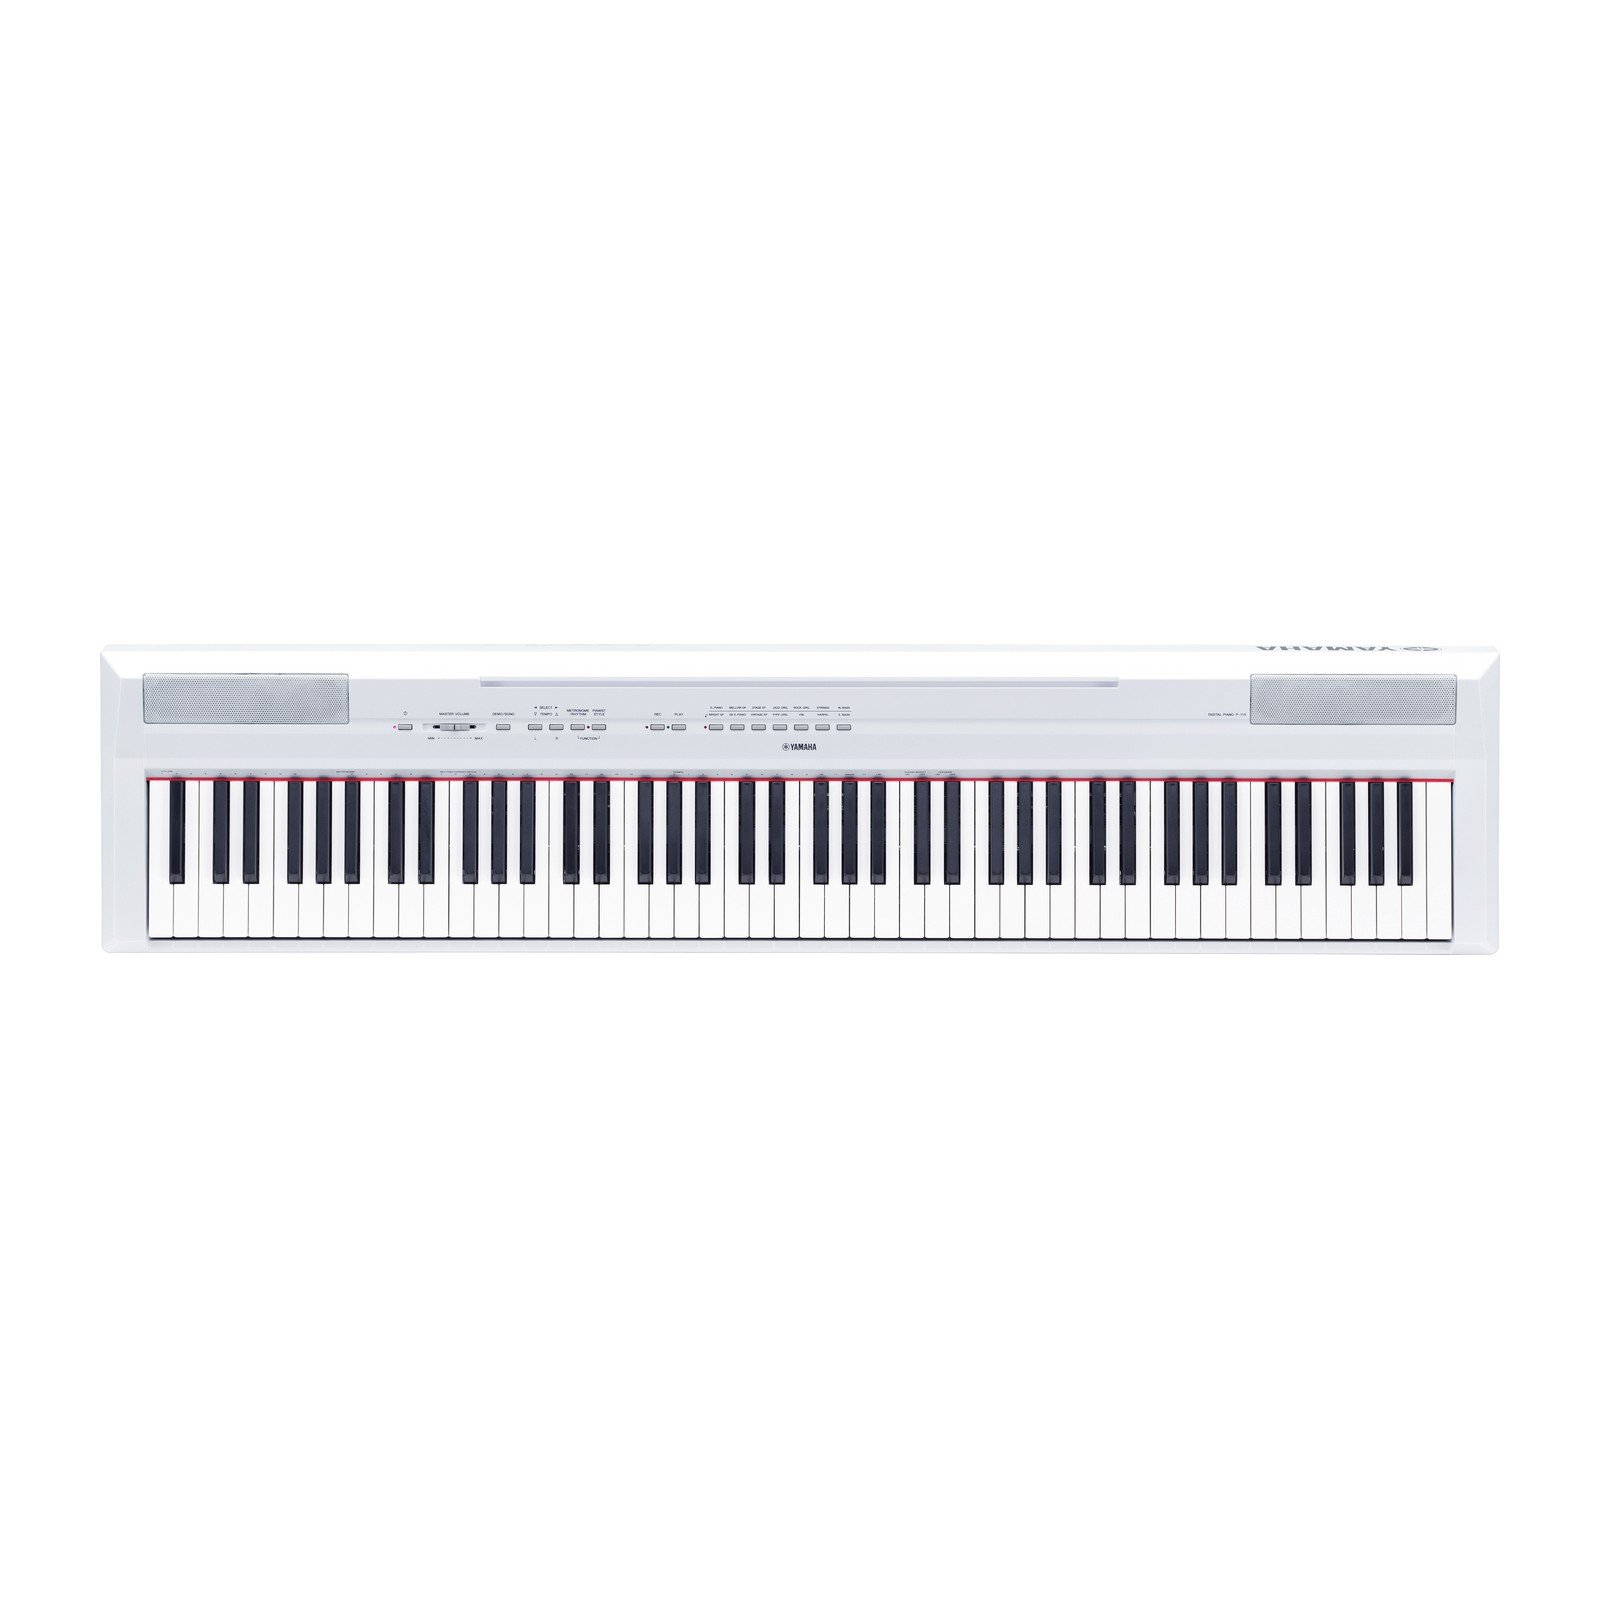 Yamaha P115 88-Key Weighted Action Digital Piano with Sustain Pedal, White by YAMAHA